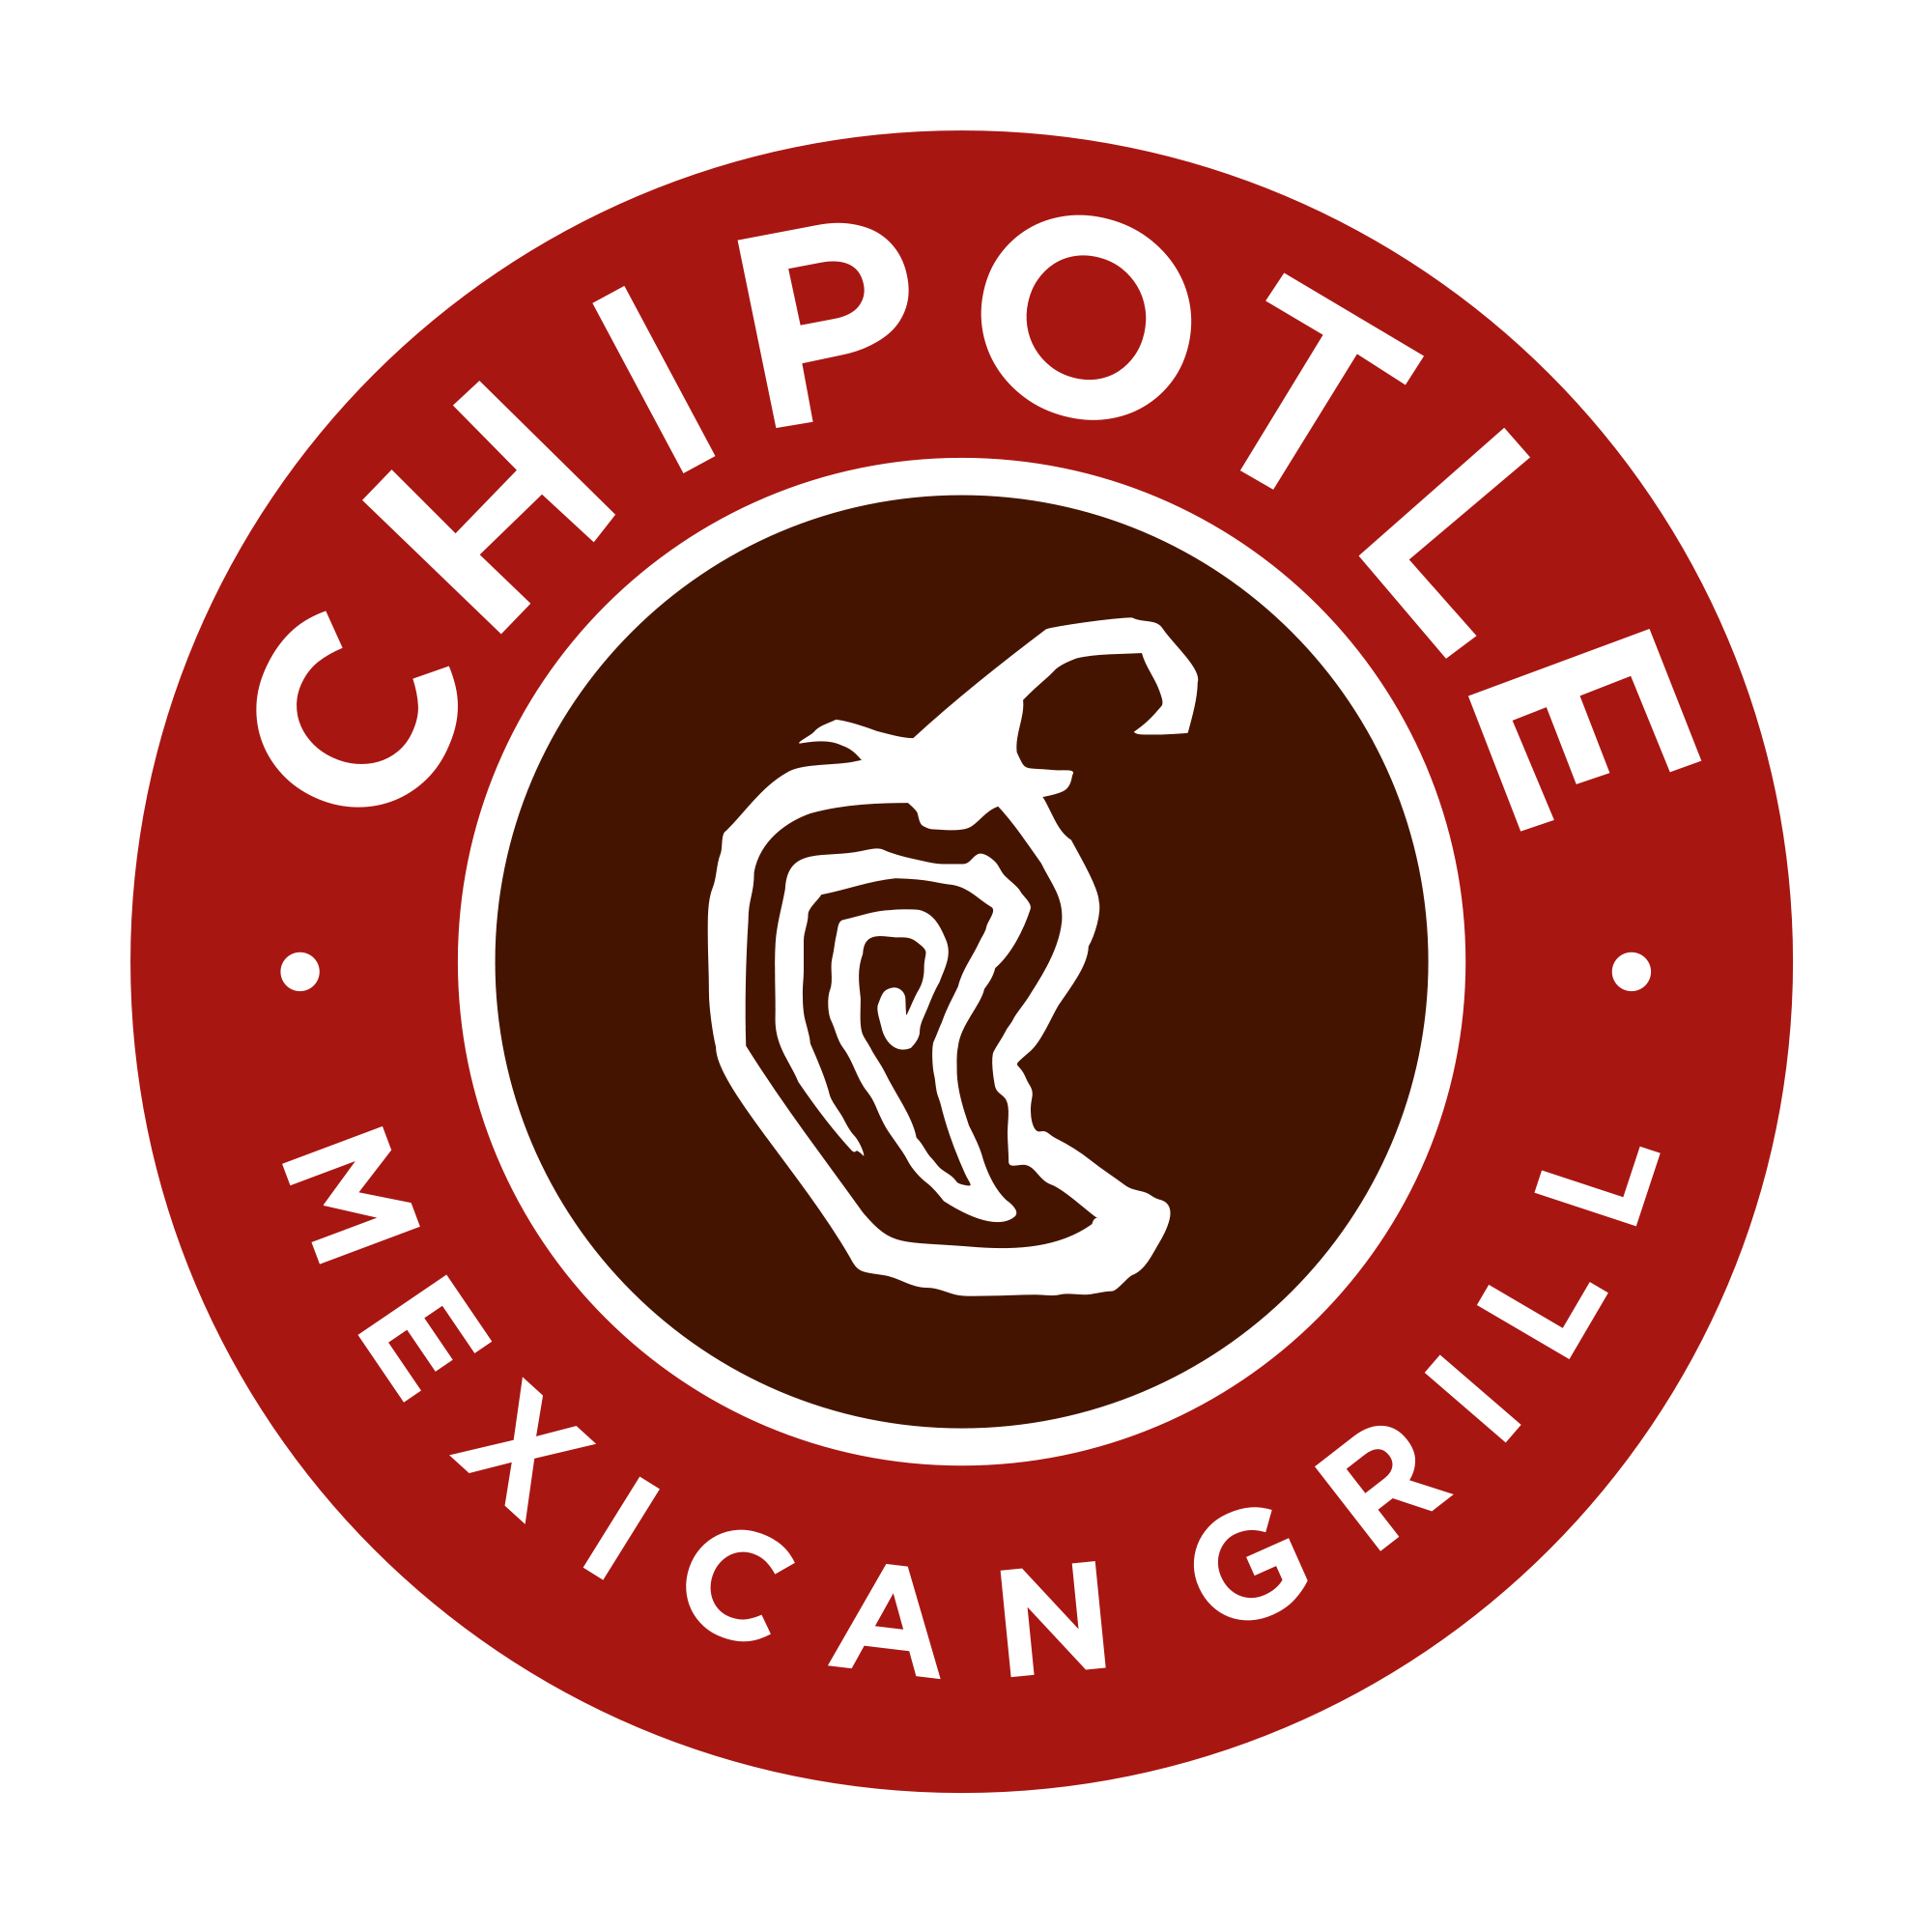 Can I Eat Low Sodium At Chipotle Chipotle mexican grill